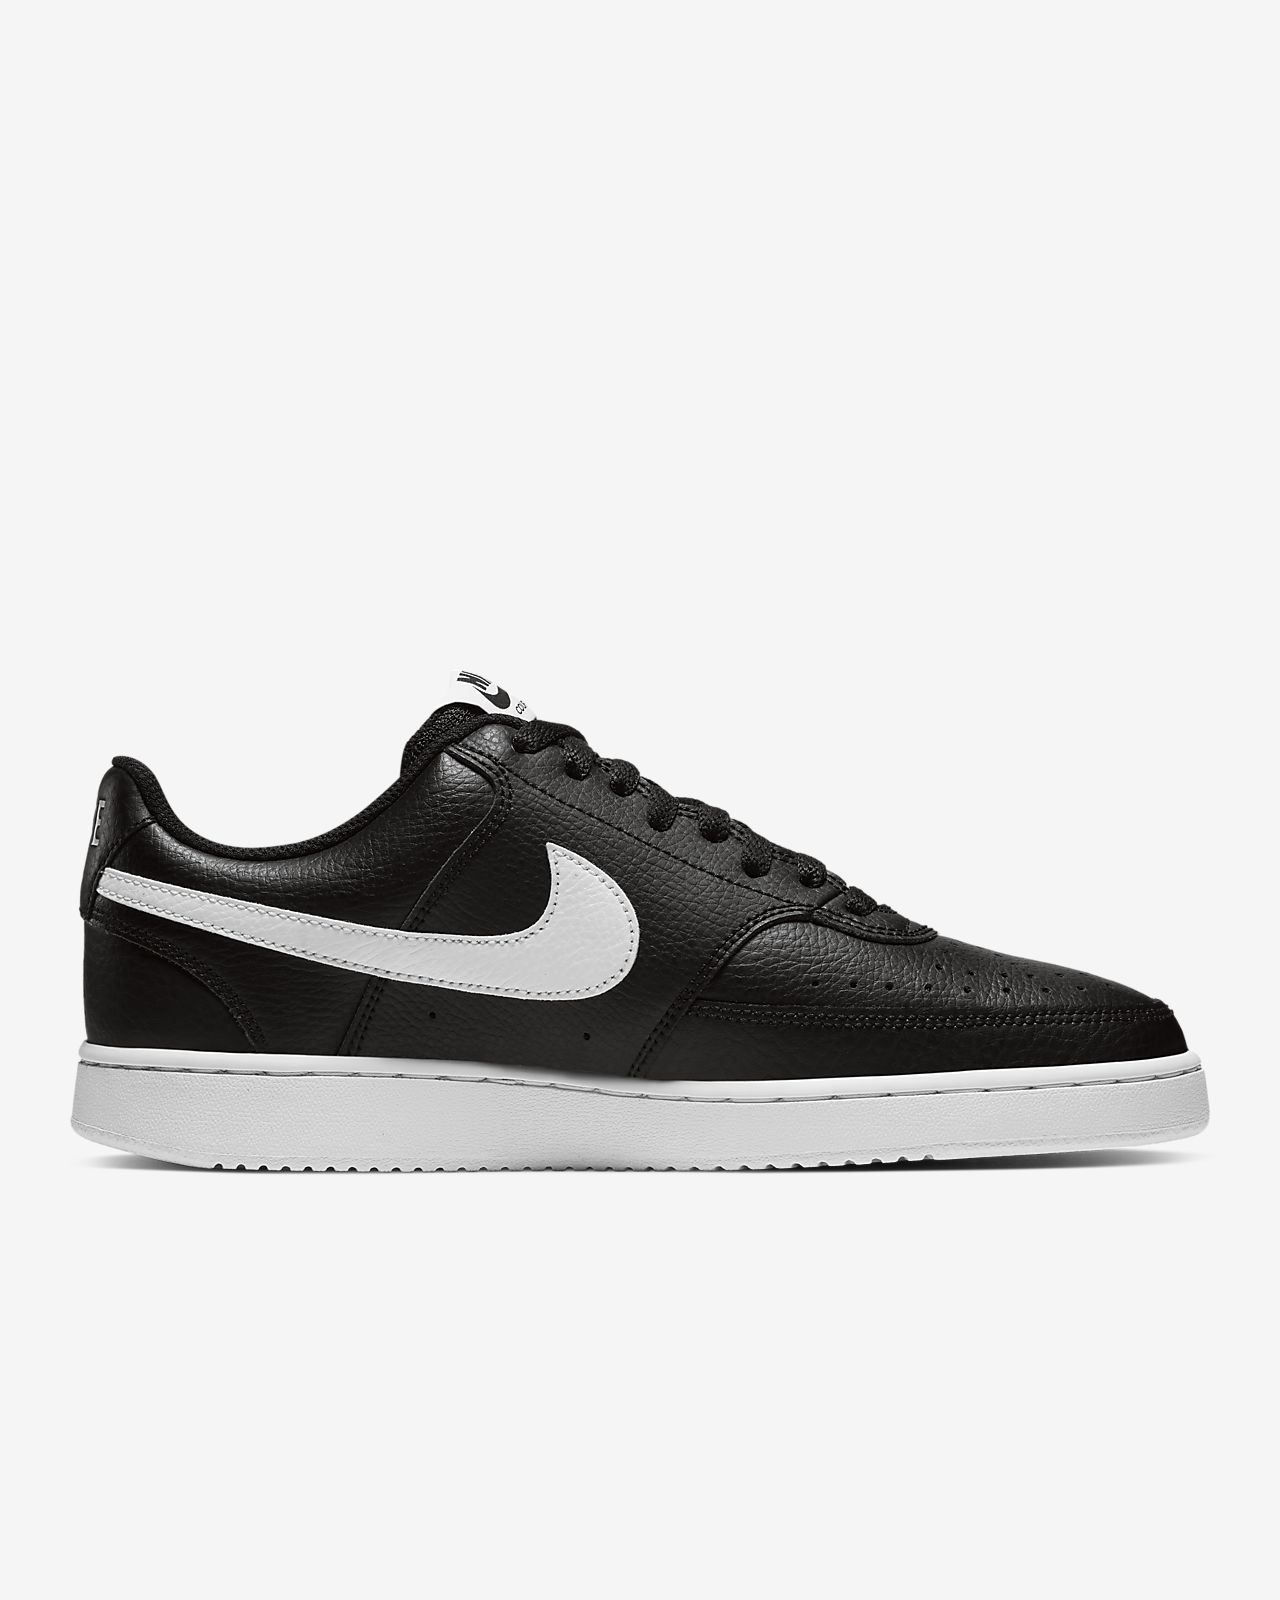 Nike CourtVision (Look alike Air Force Ones!)